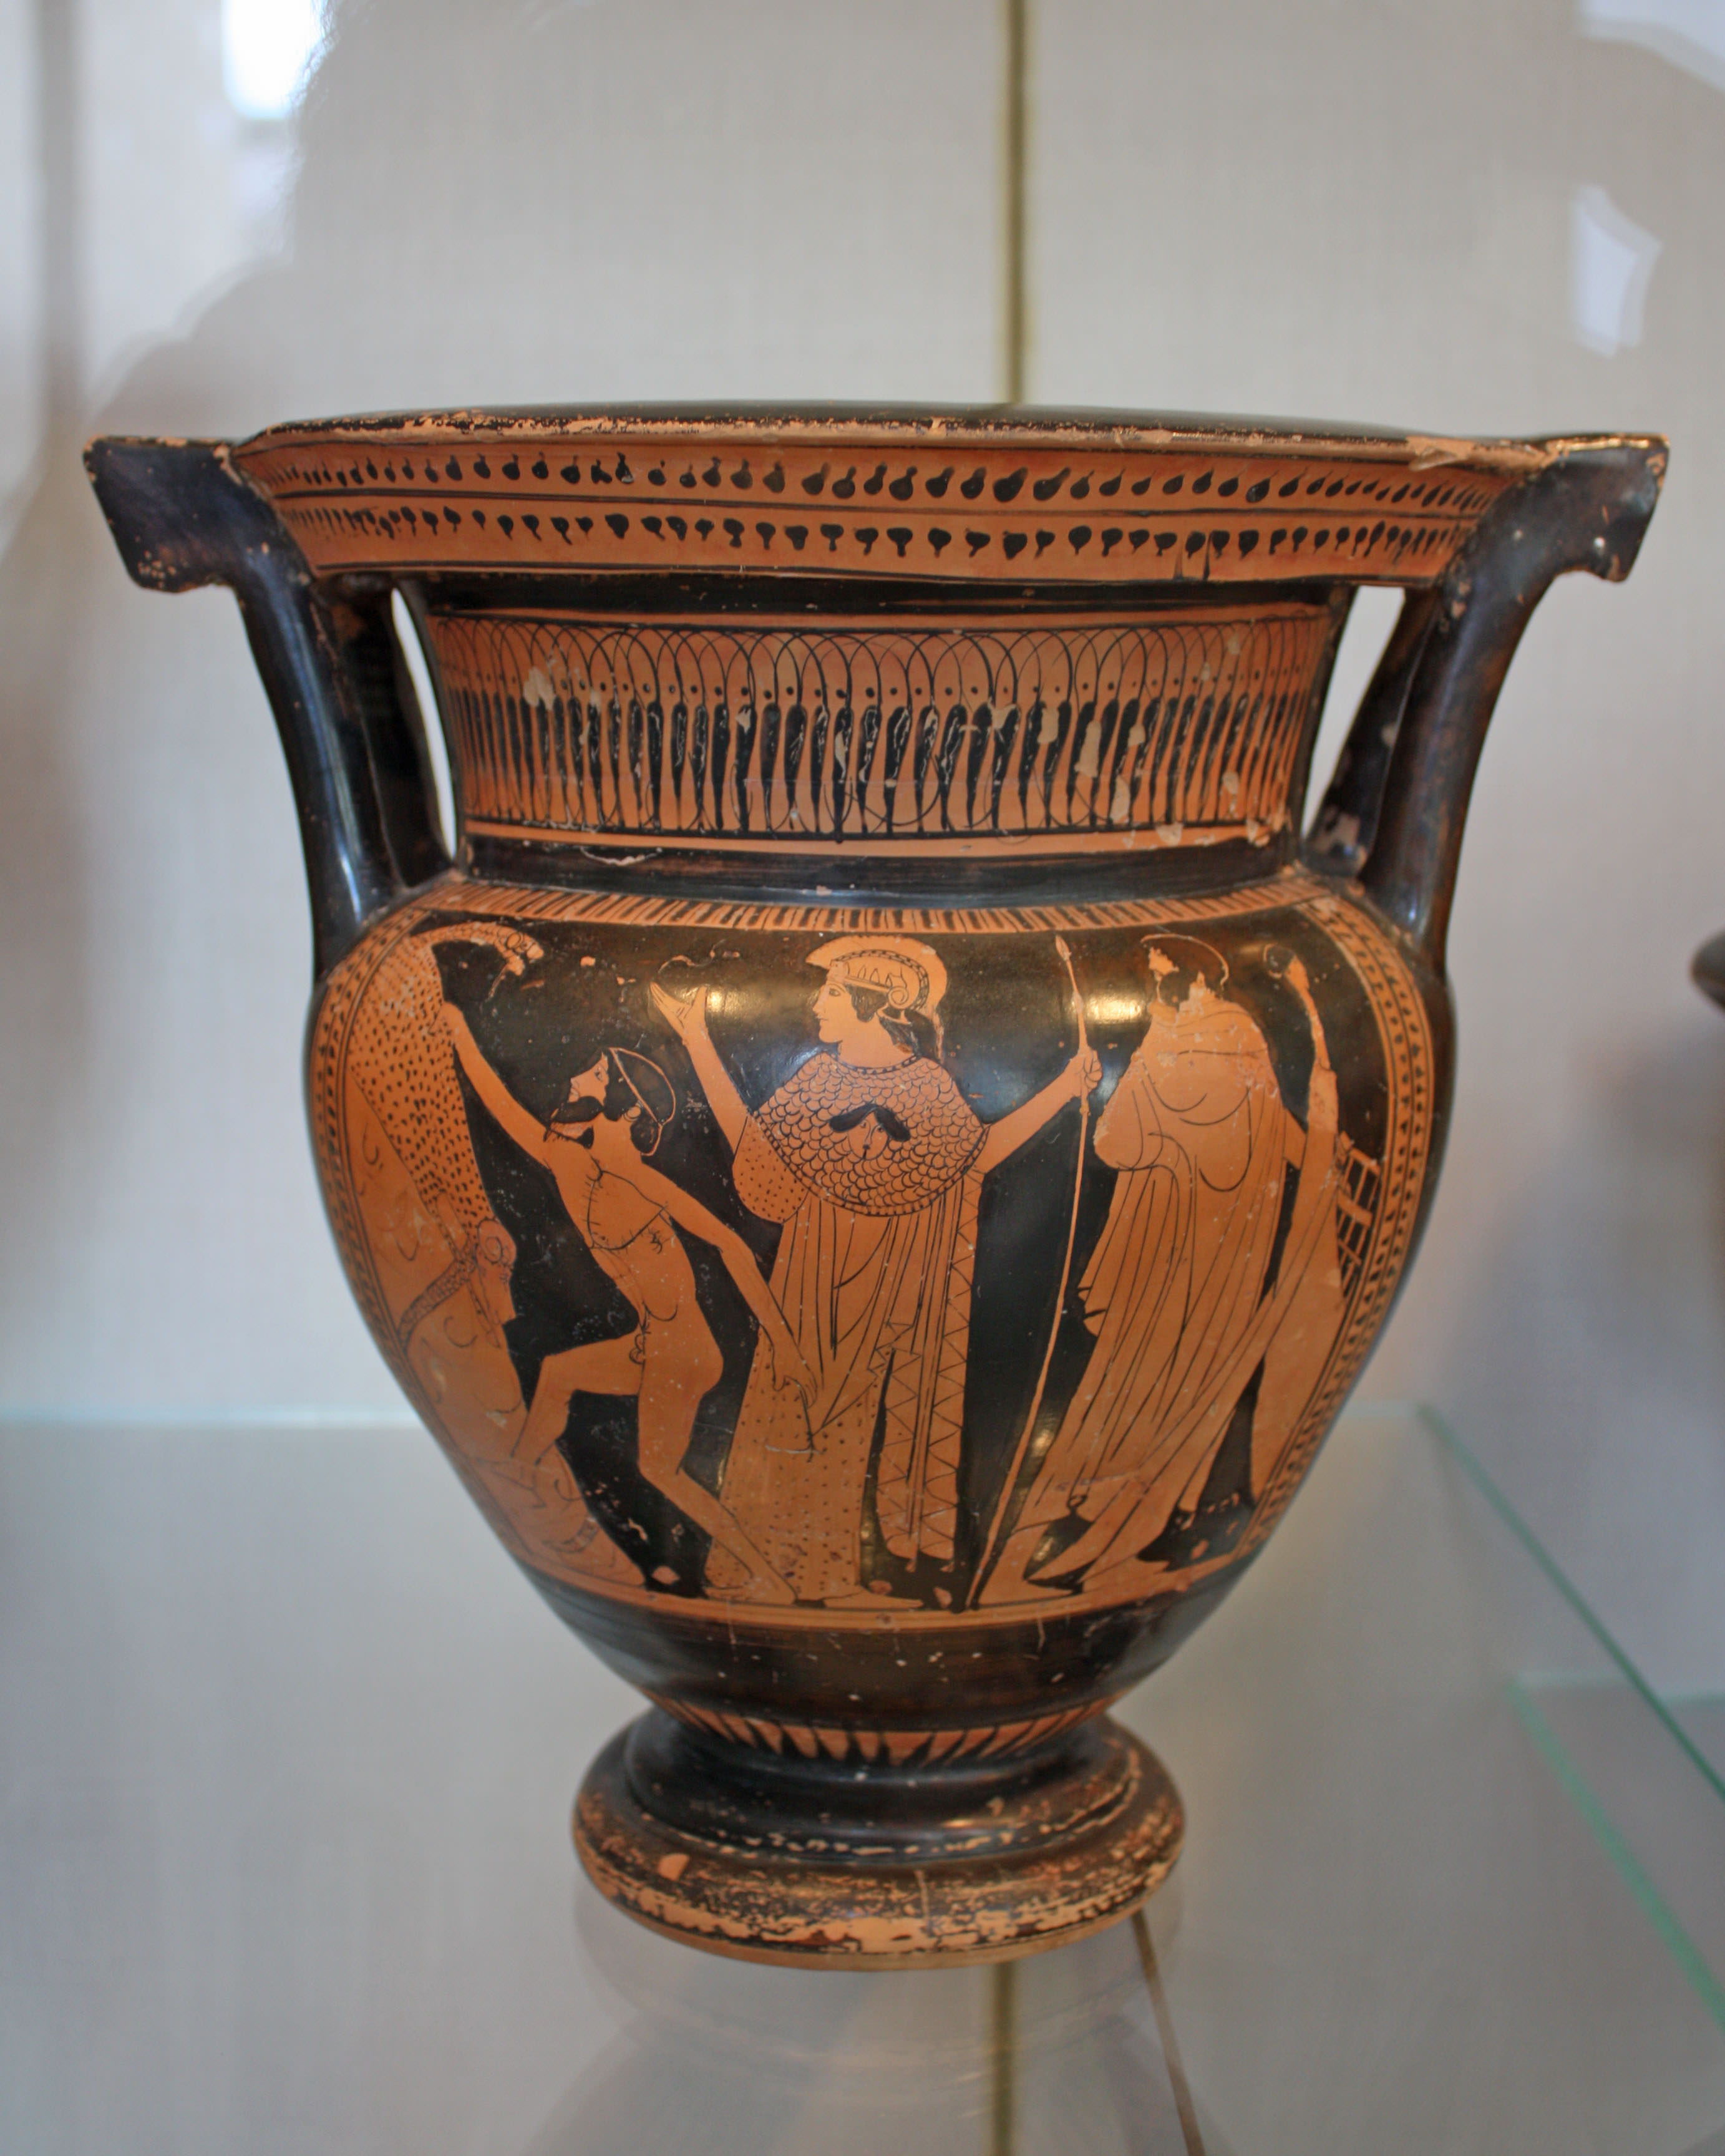 Decorative Jugs And Vases A Visual Glossary Of Greek Pottery Article Ancient History